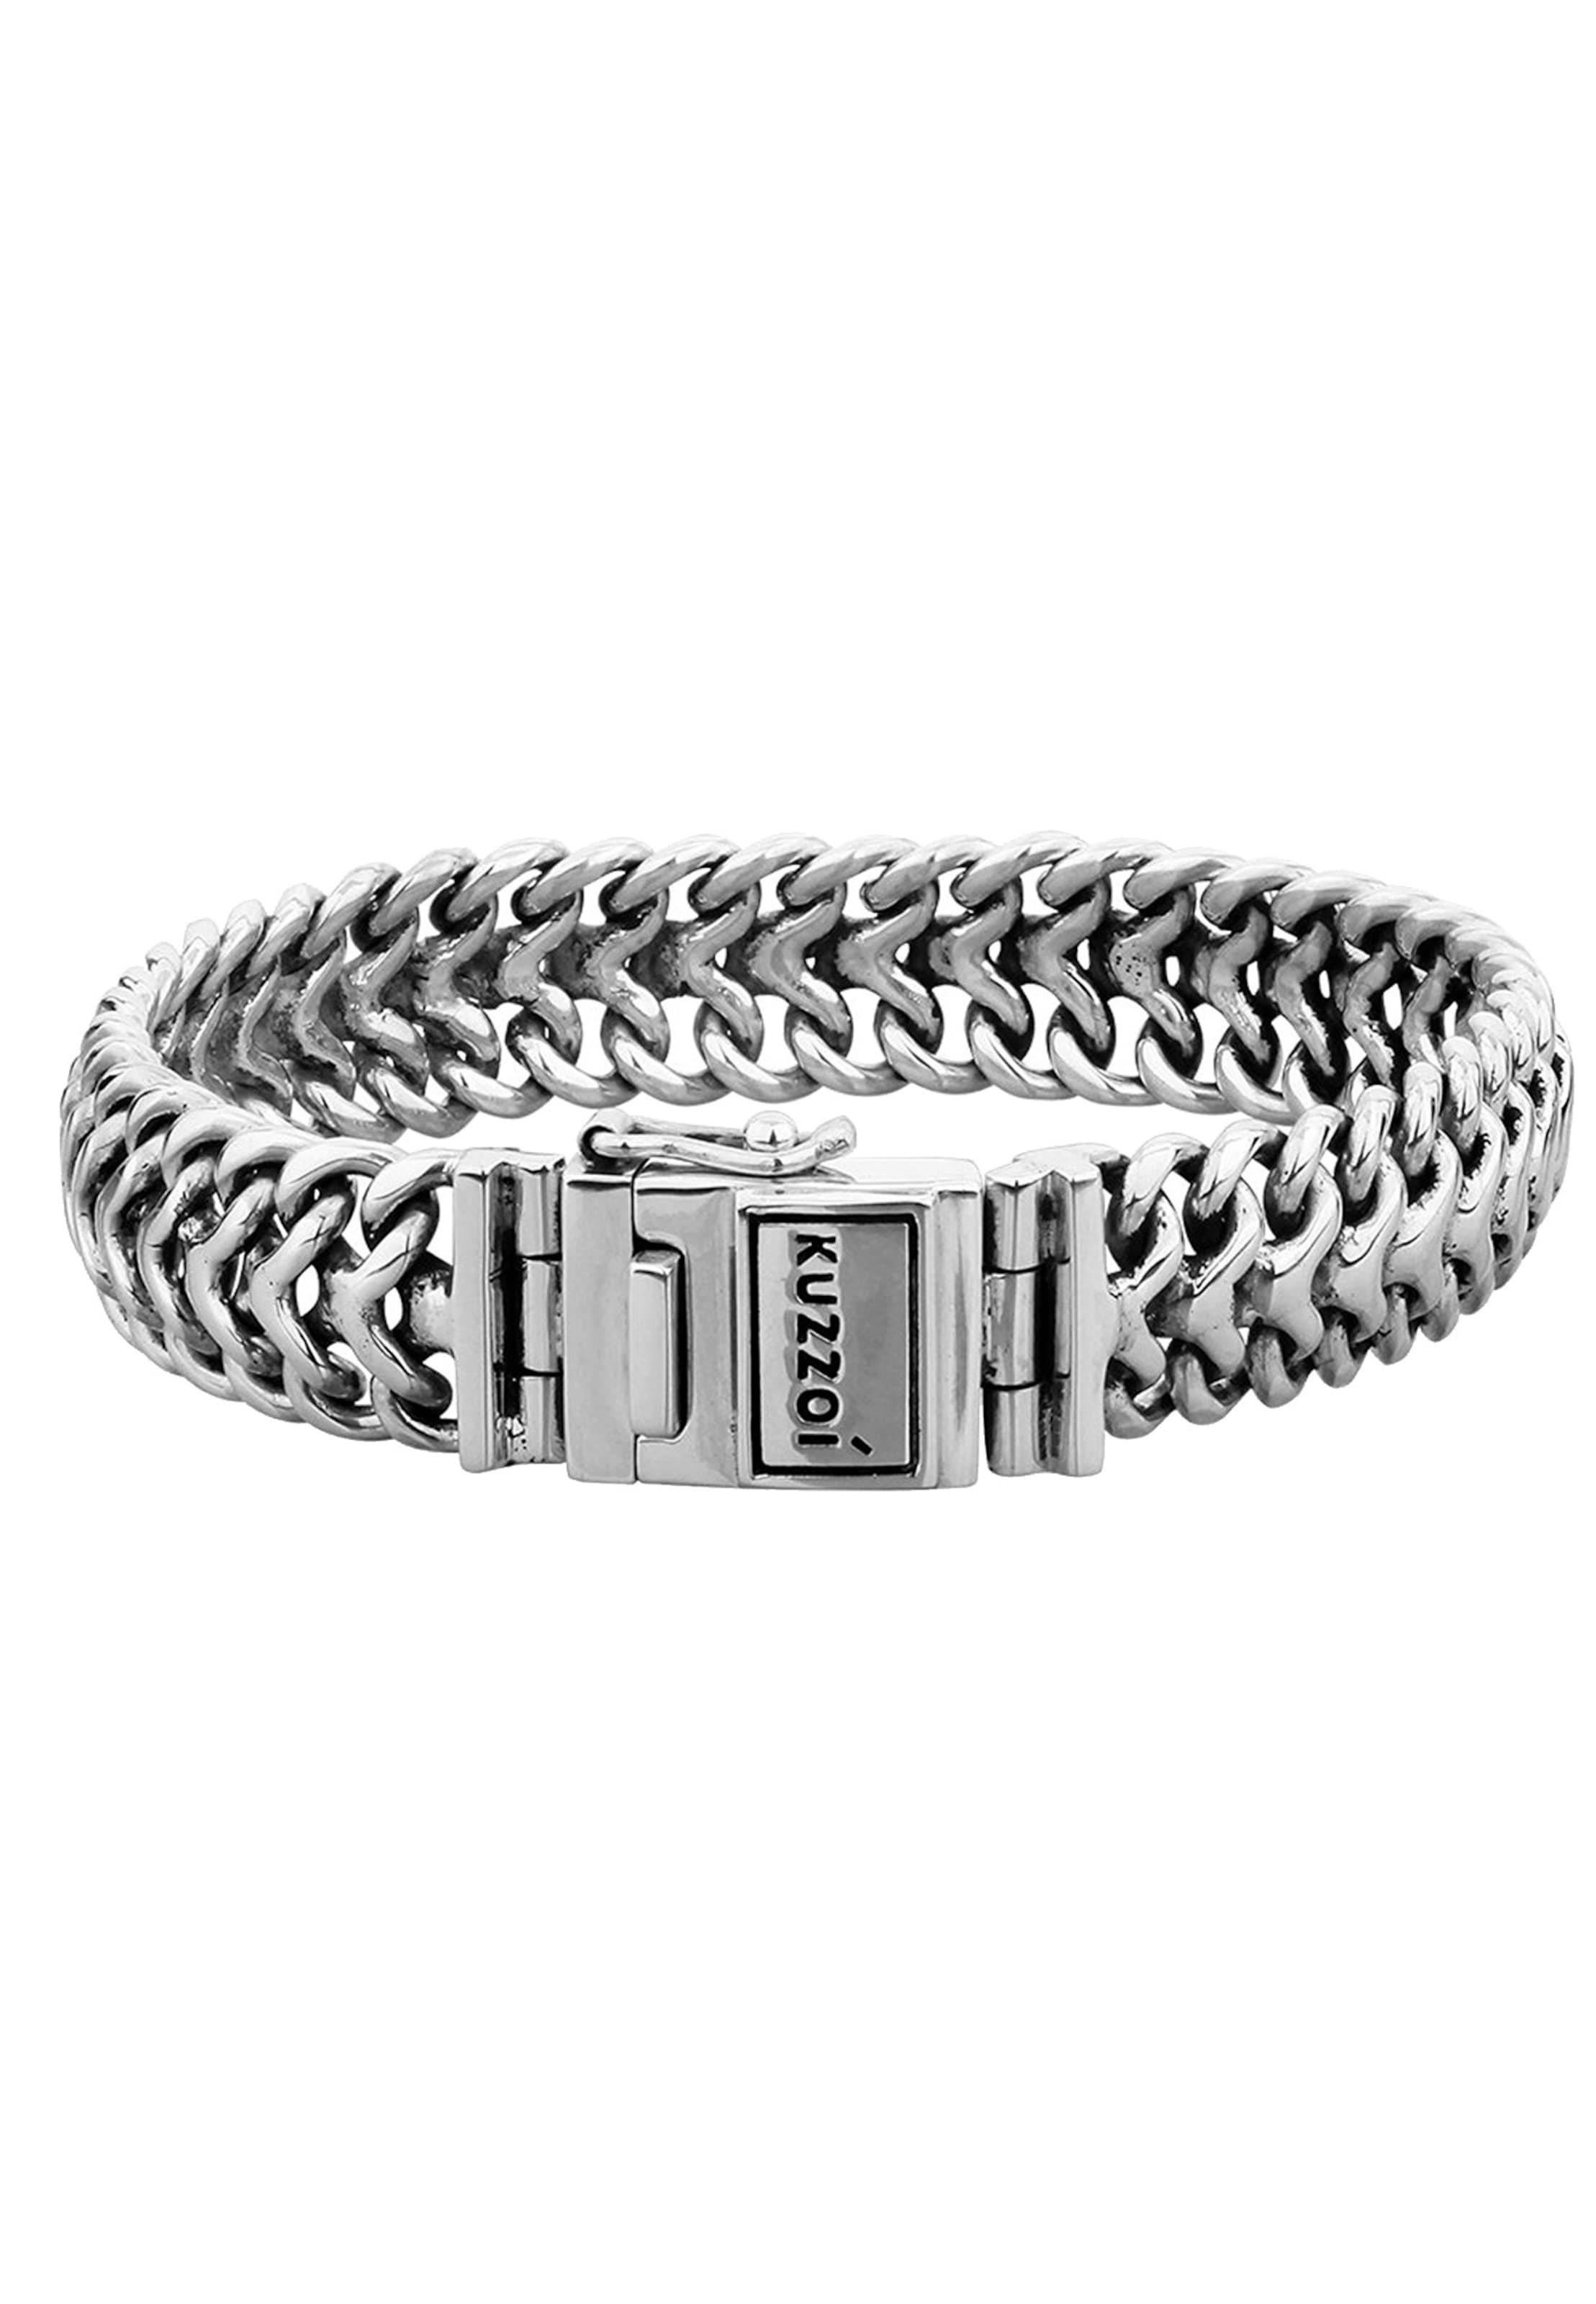 In 'twisted' Silber Kuzzoi Armband TF3uK1l5Jc